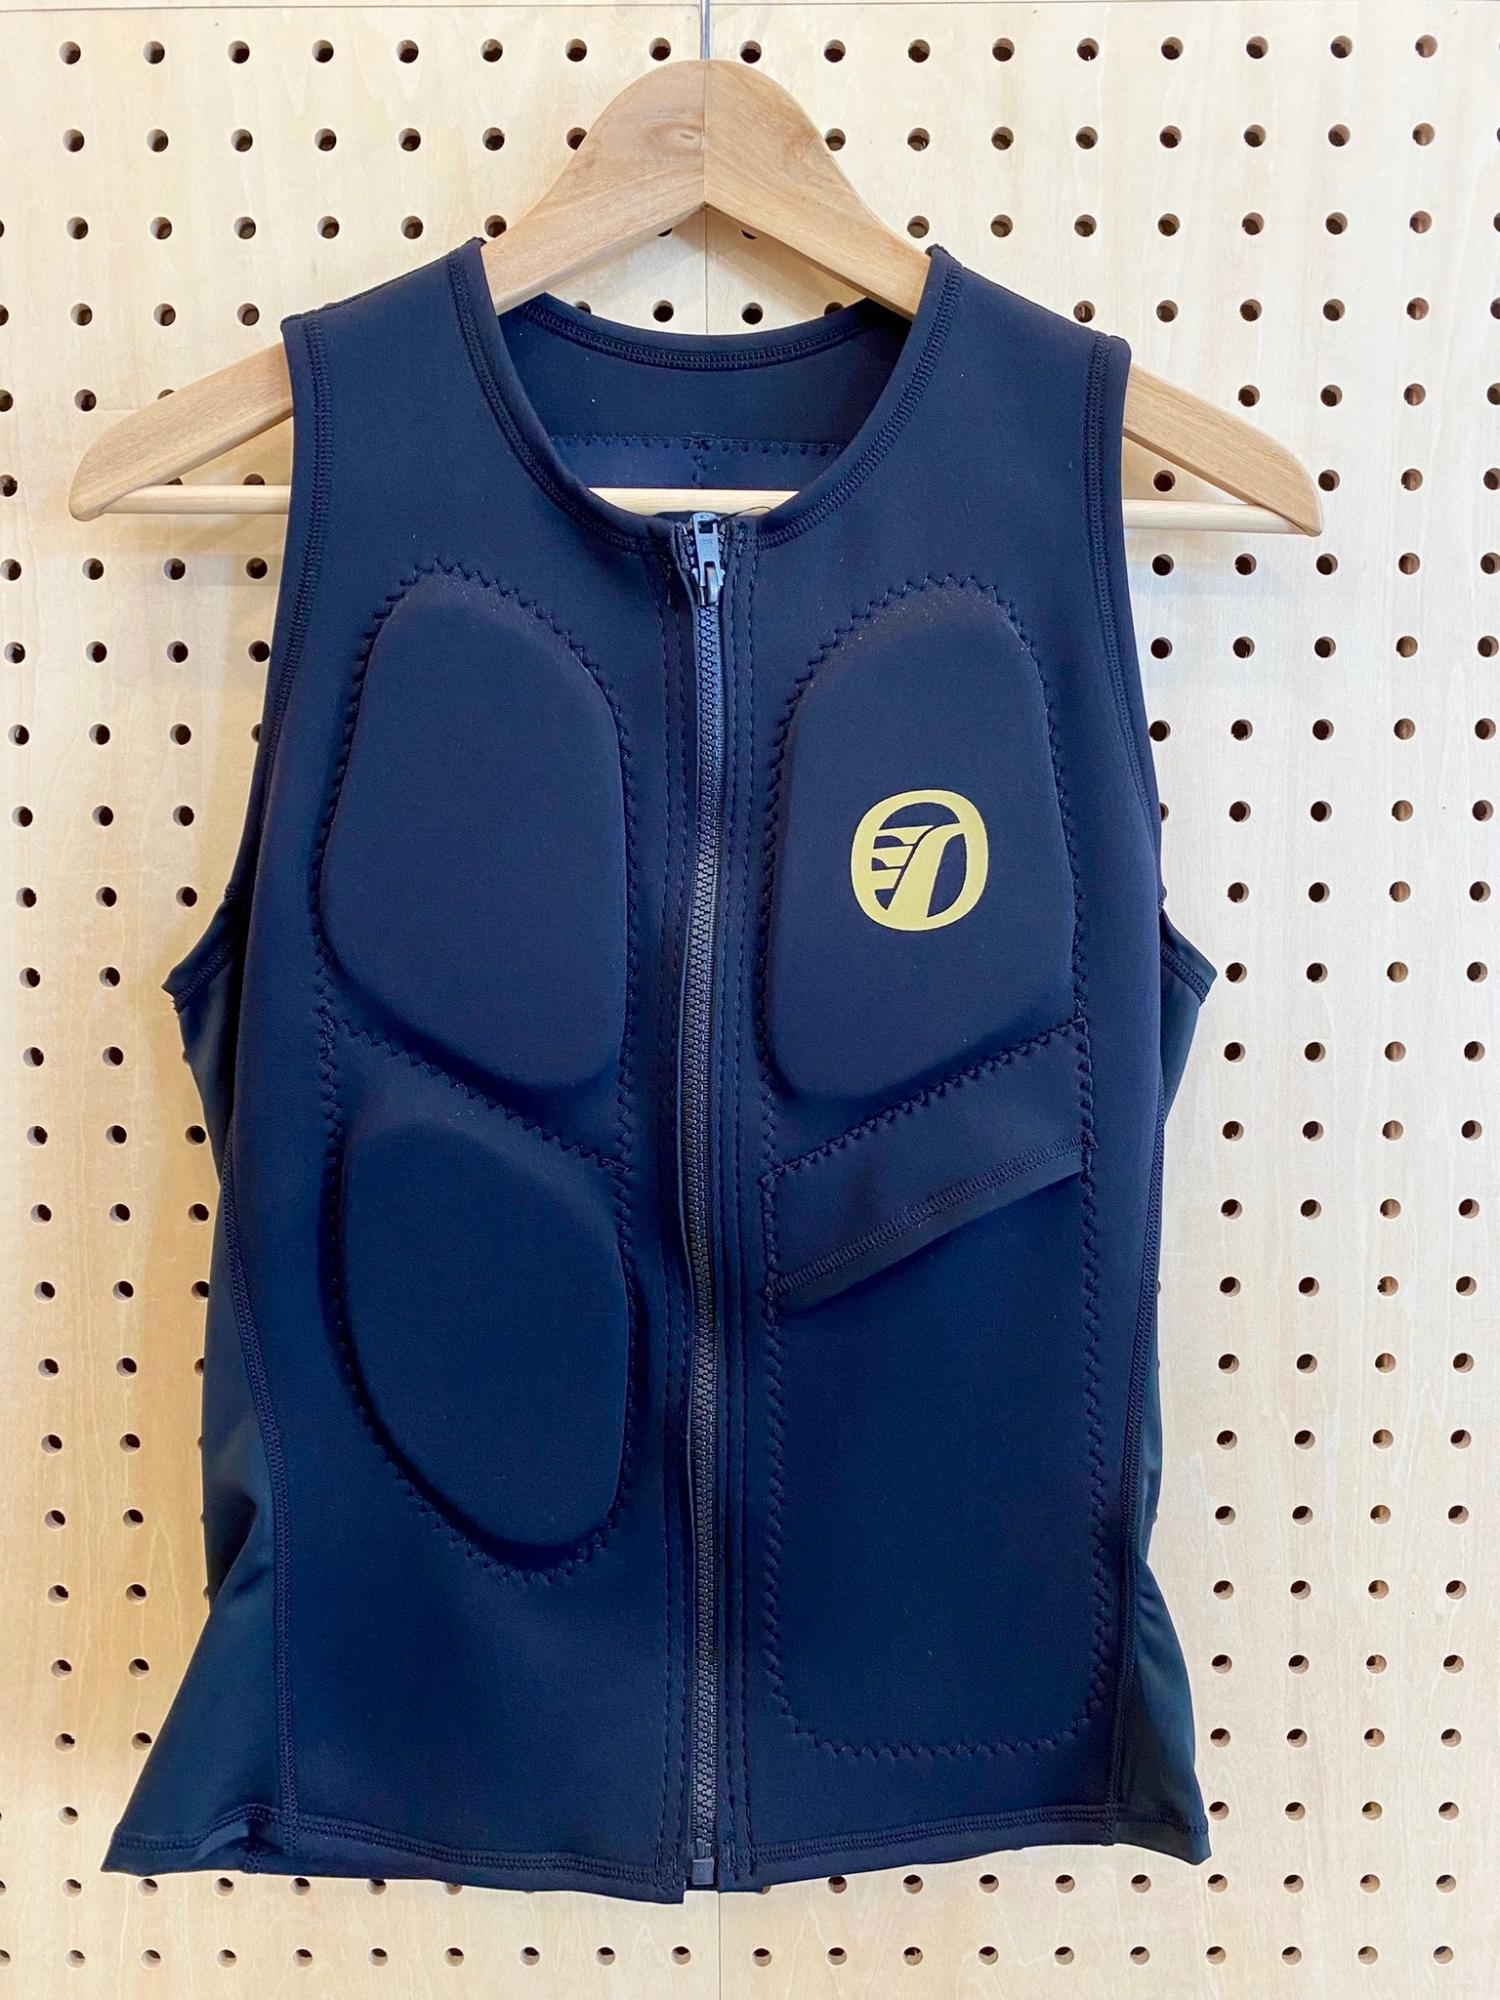 RINCON Water Support Vest Gold logo